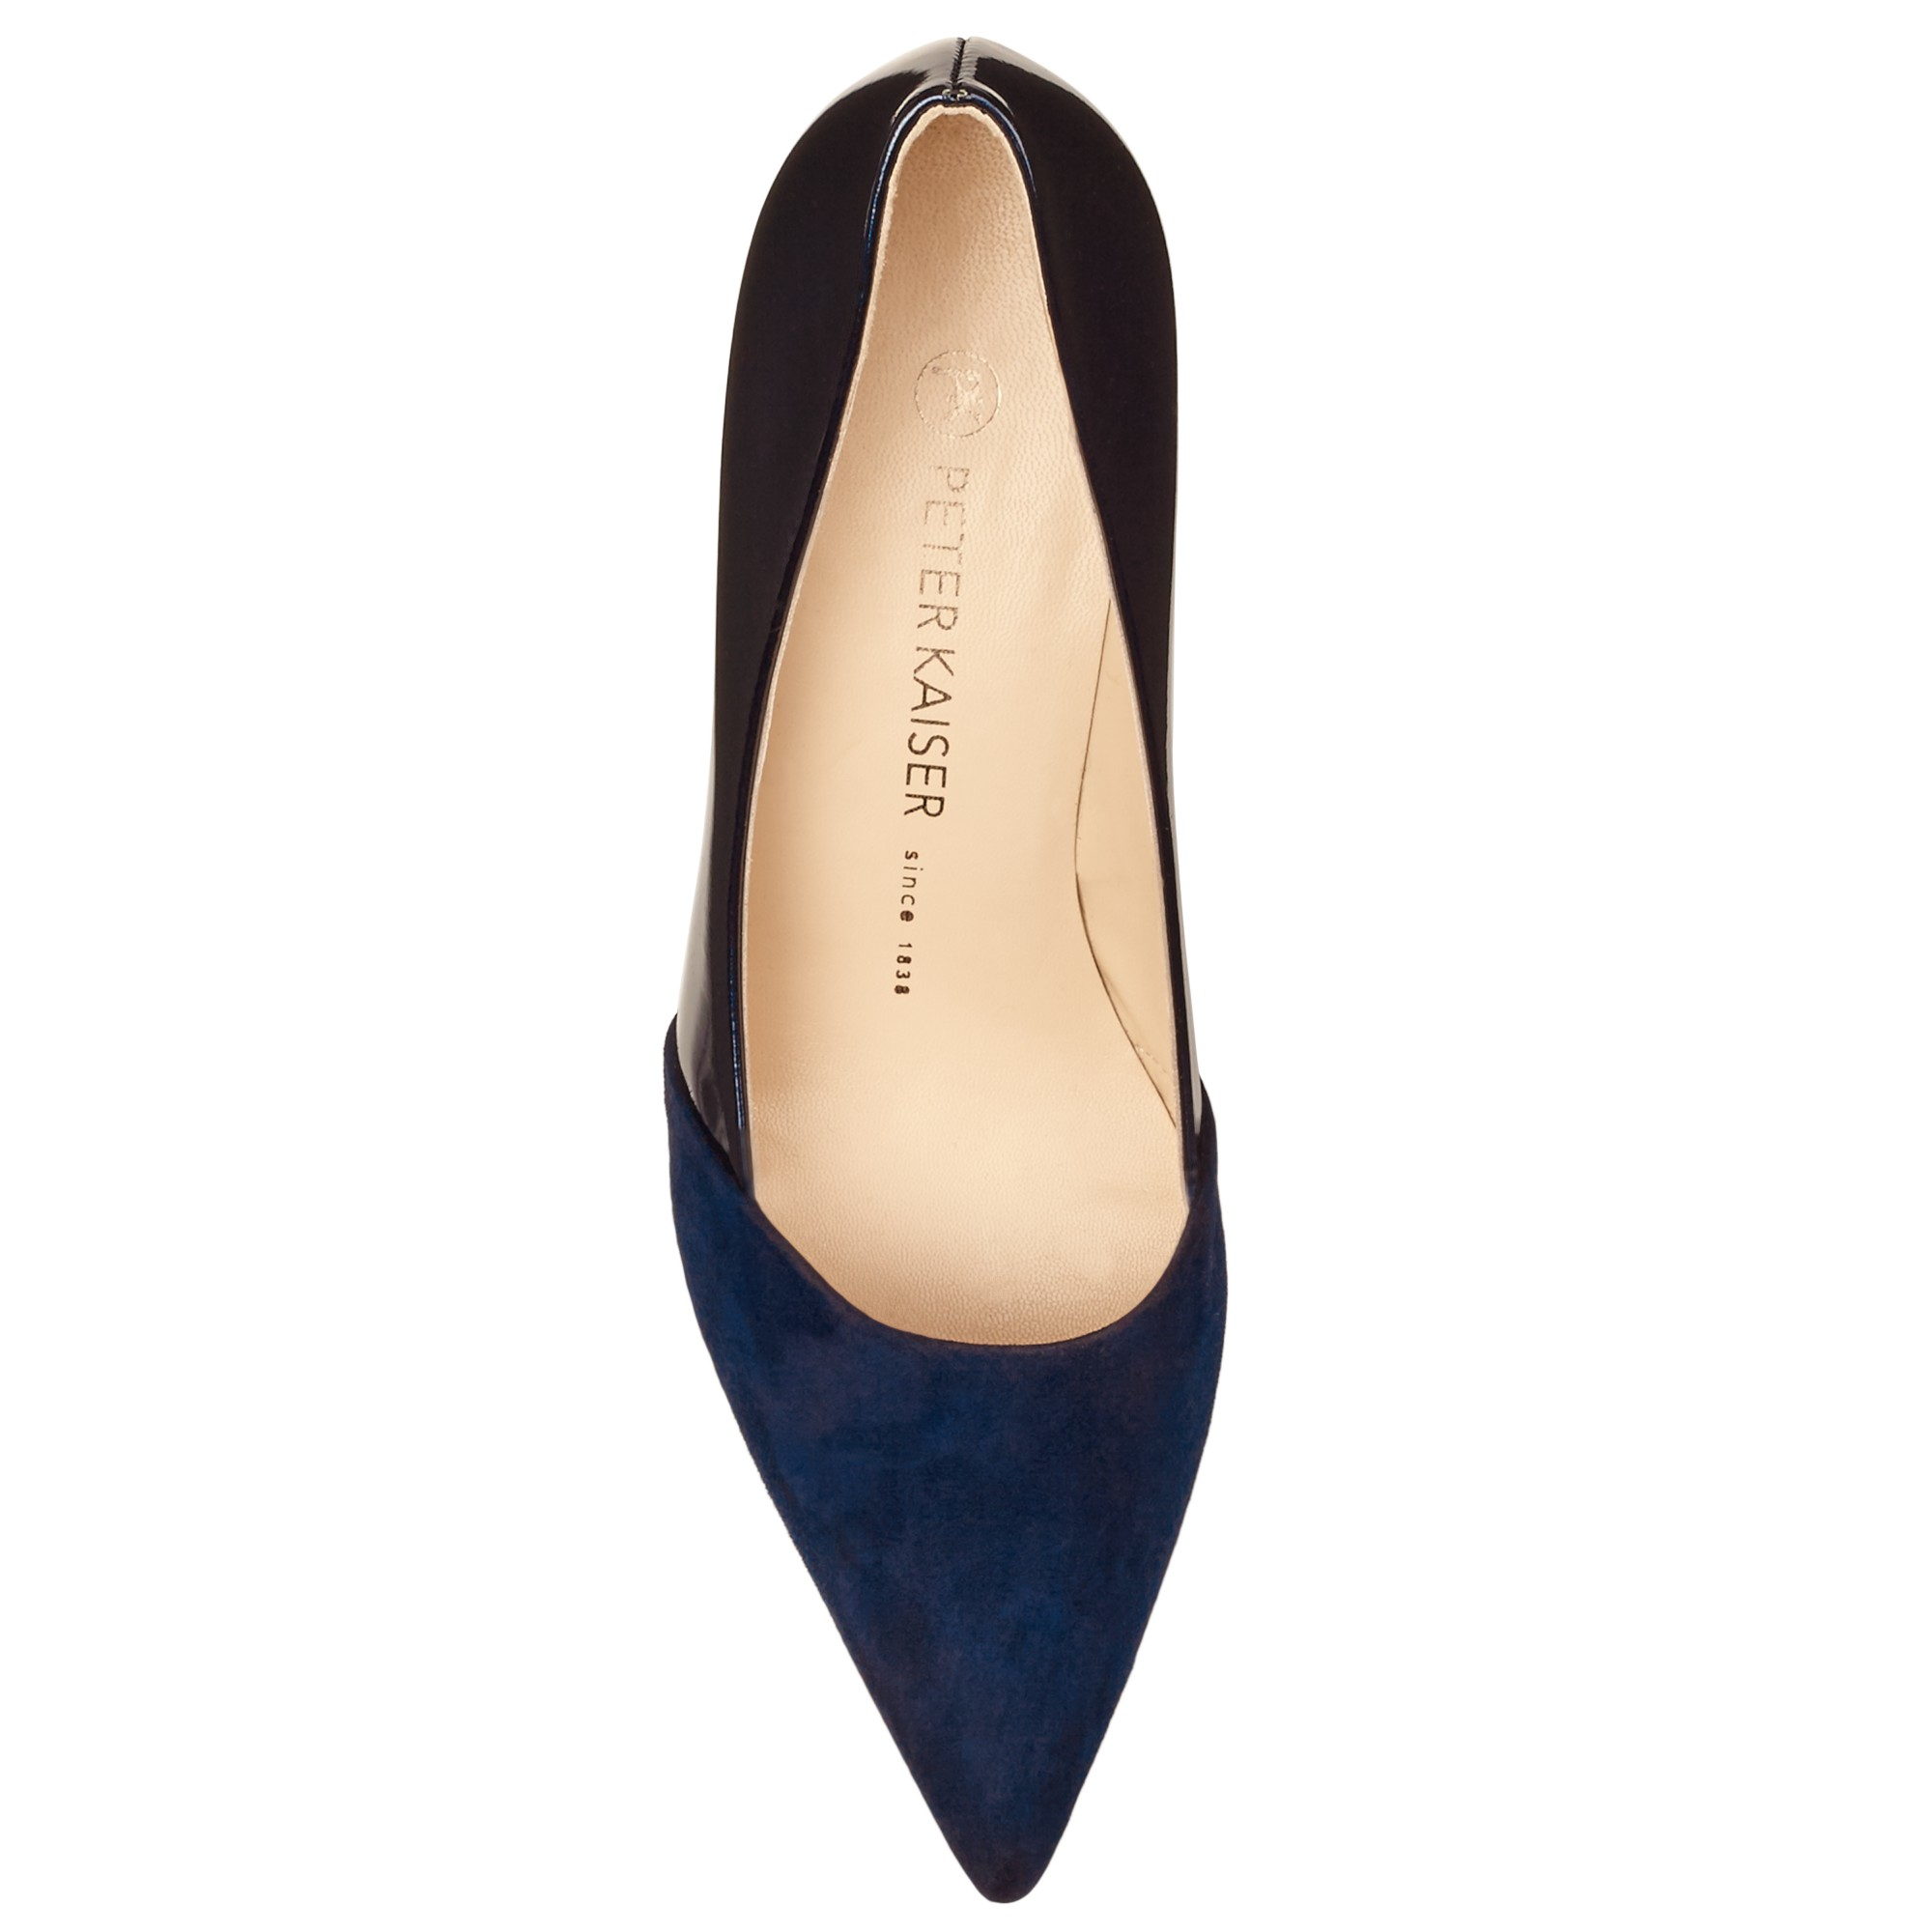 cb86391b786 Peter Kaiser Semitara Mid Heeled Stiletto Court Shoes in Blue - Lyst